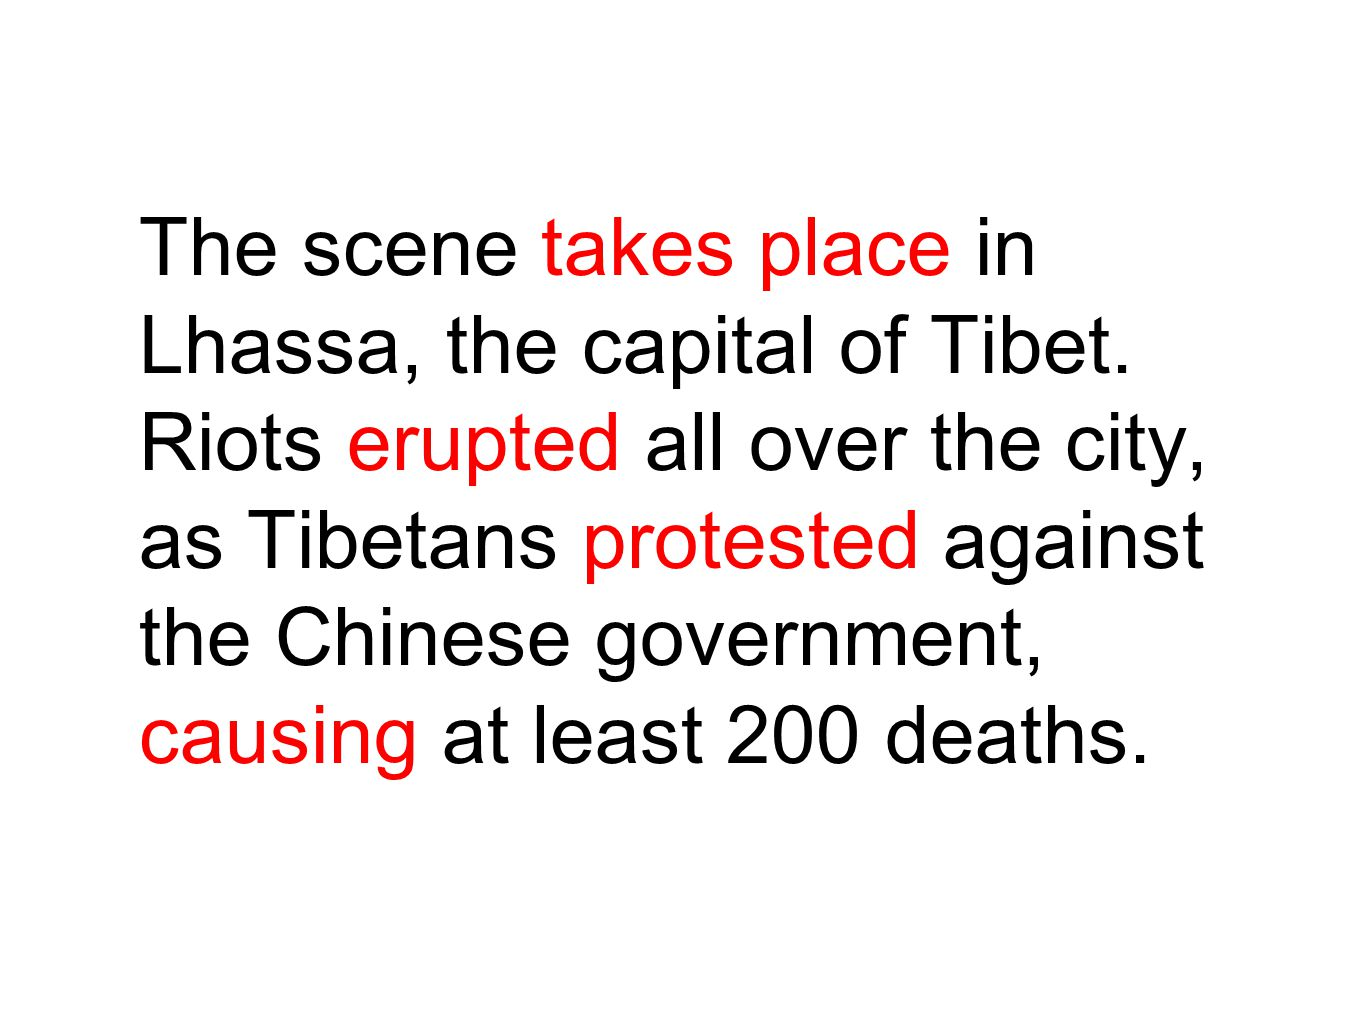 The scene takes place in Lhassa, the capital of Tibet. Riots erupted all over the city, as Tibetans protested against the Chinese government, causing